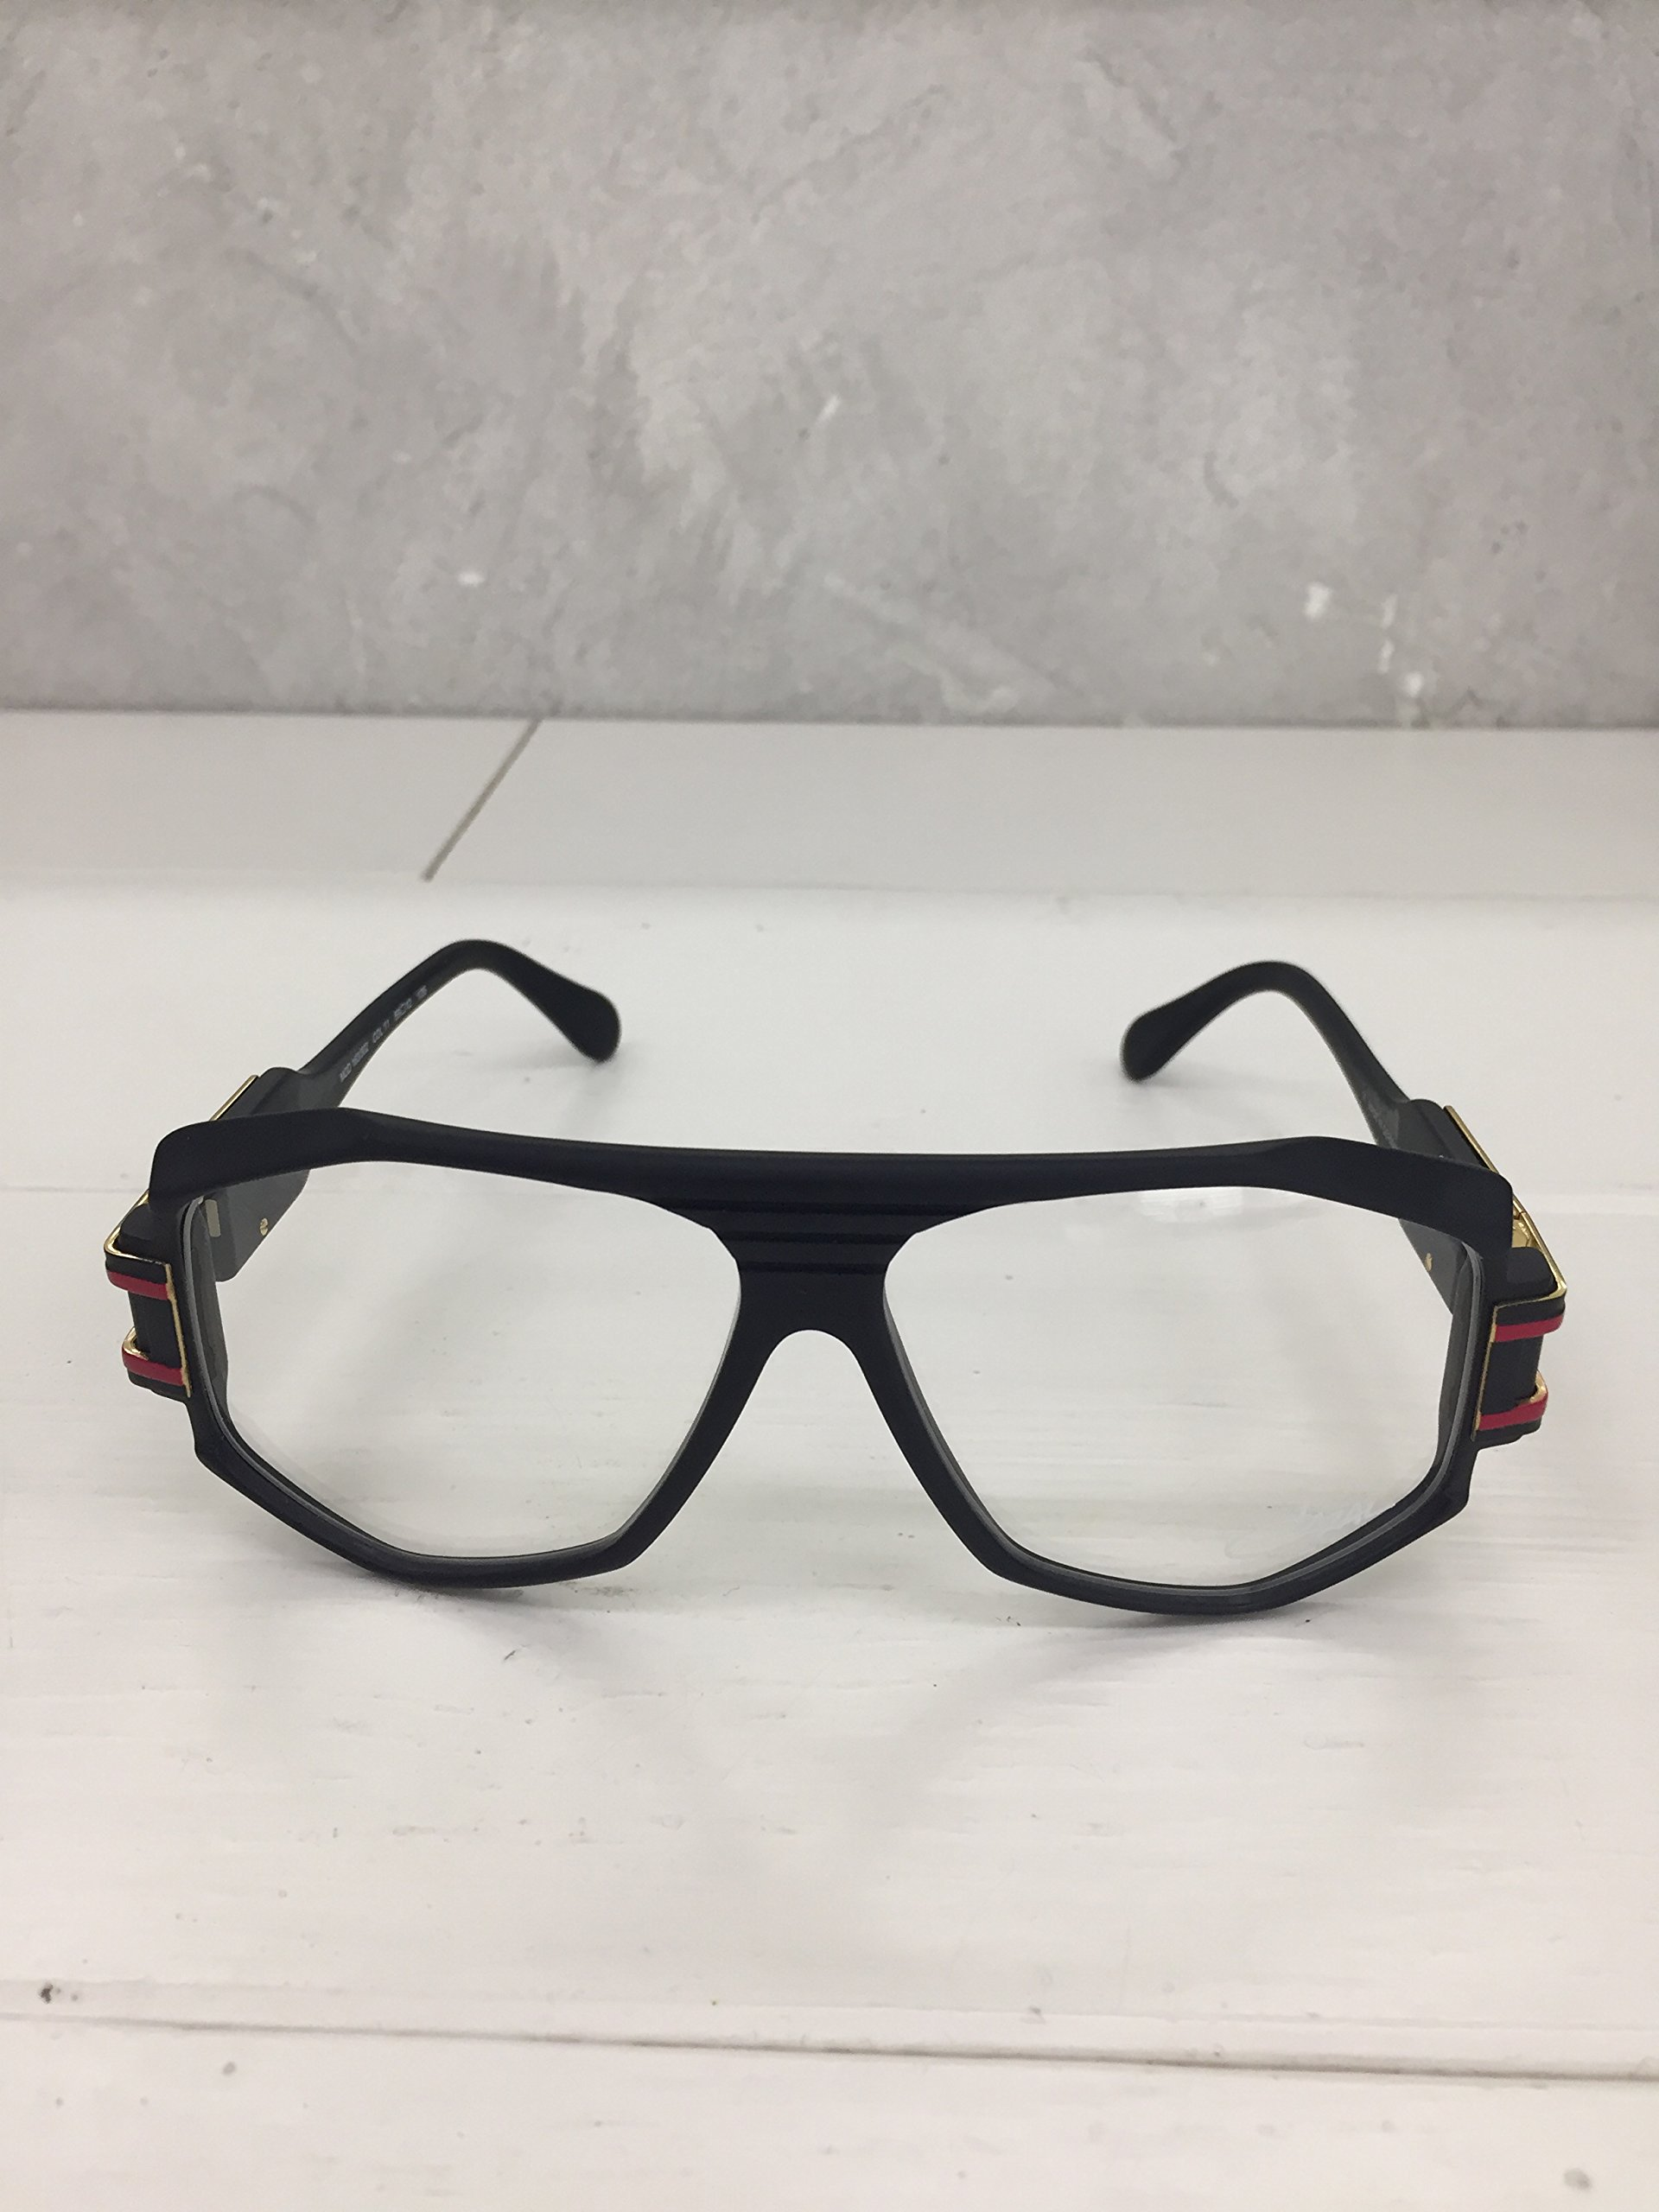 Cazal Eyewear Legends 163 11 matt Black red 100% Authentic New by Cazal